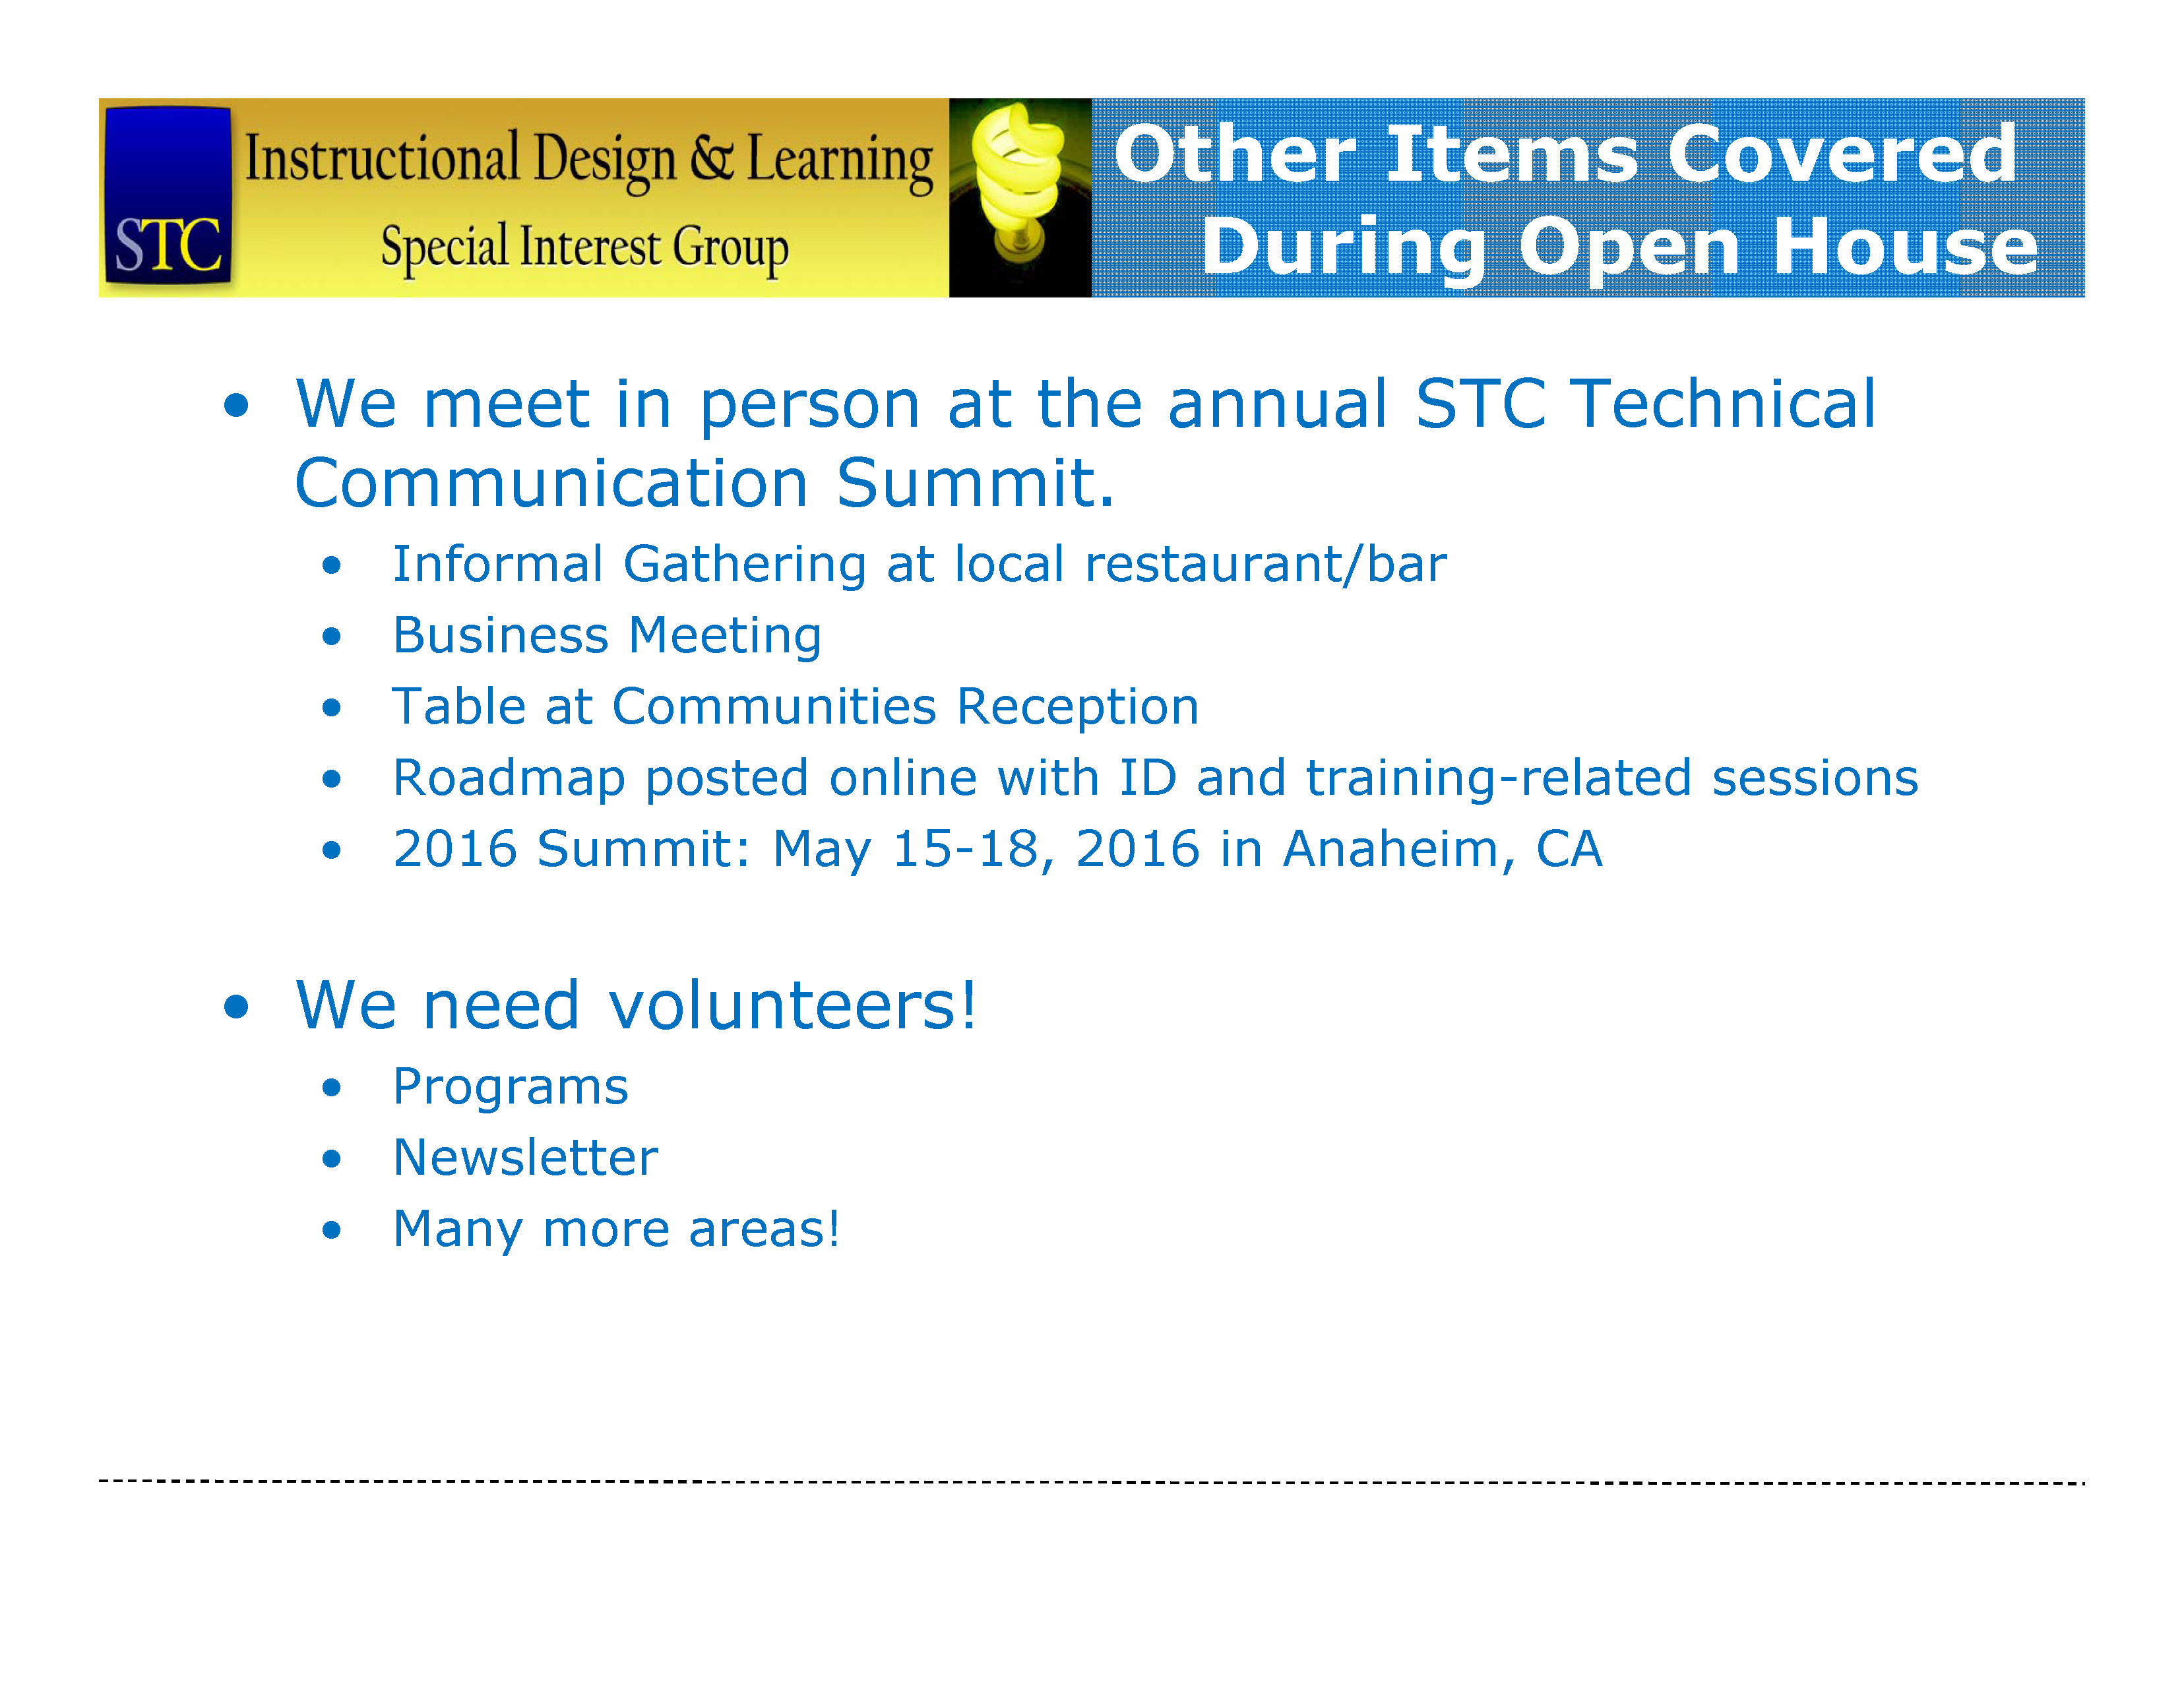 IDL SIG Virtual Open House 2015_FINAL_Page_21